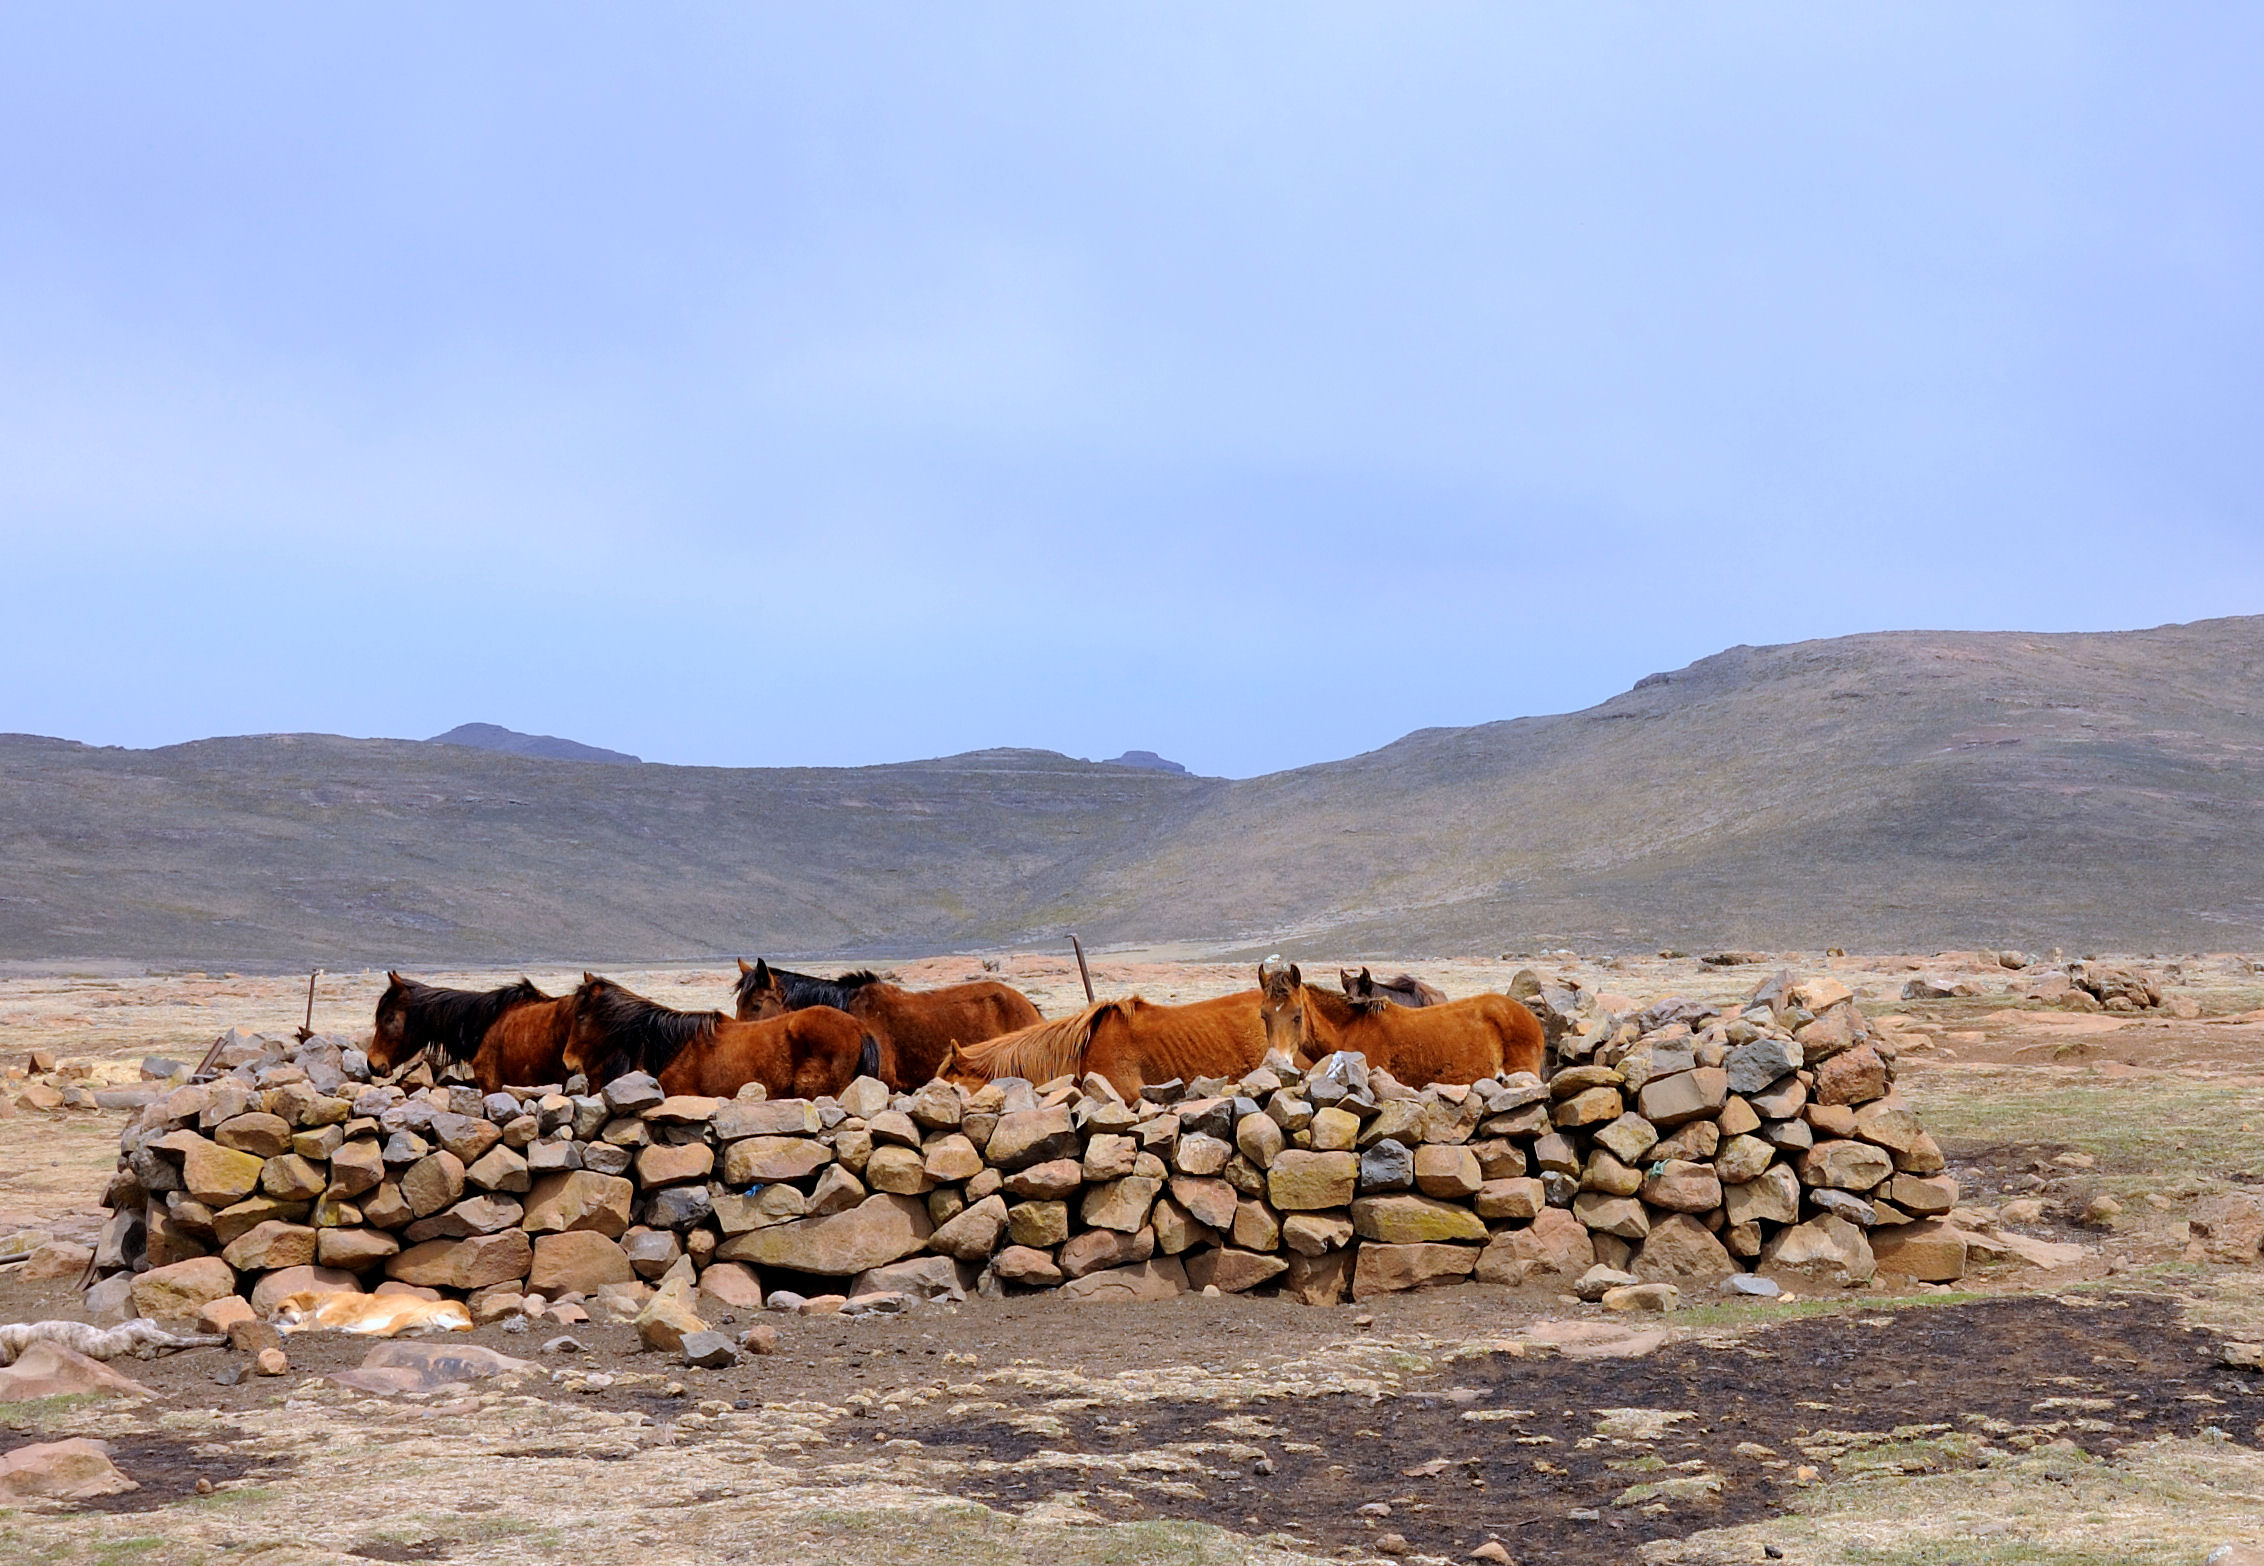 Stone corral and horses in Lesotho